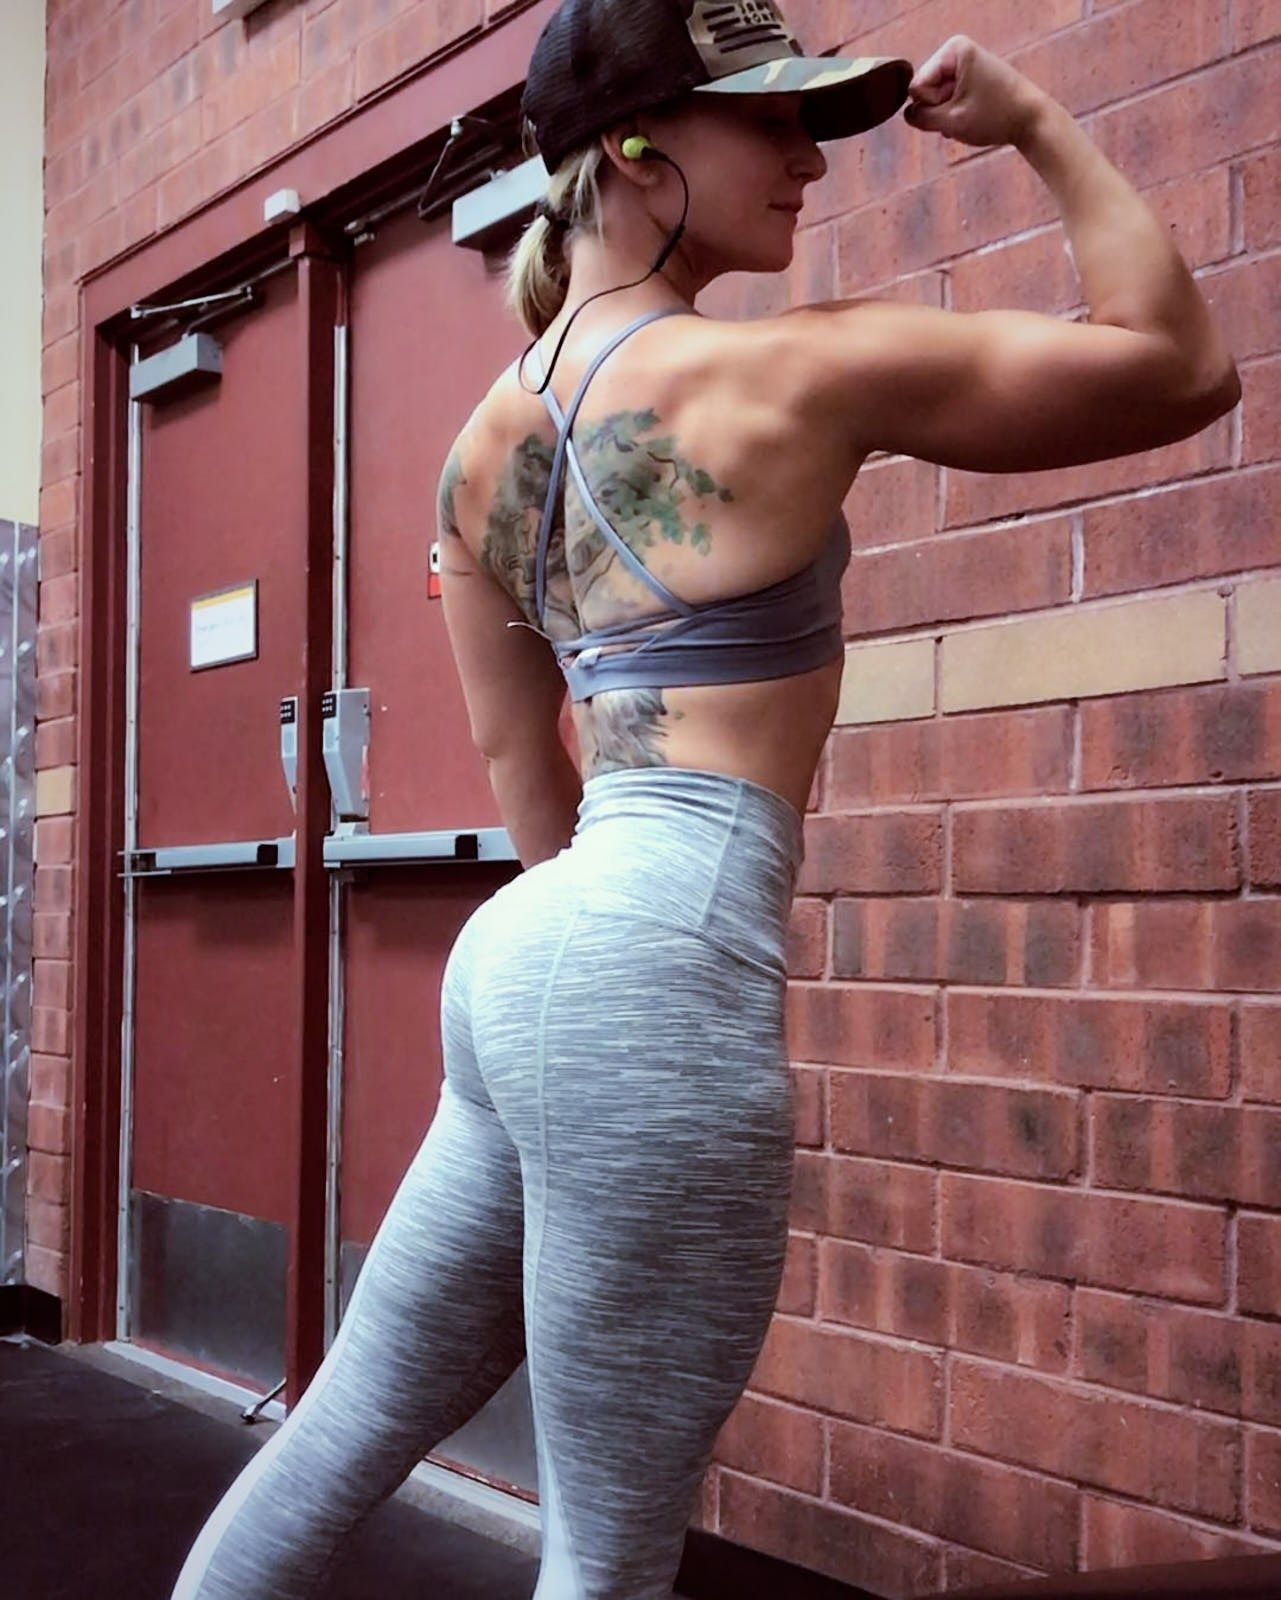 Nurse And Fitness Model Body Transformation Challengue Amy Updike Insta Fitness Models Transformation Body Fitness Motivation Body Fitness Model